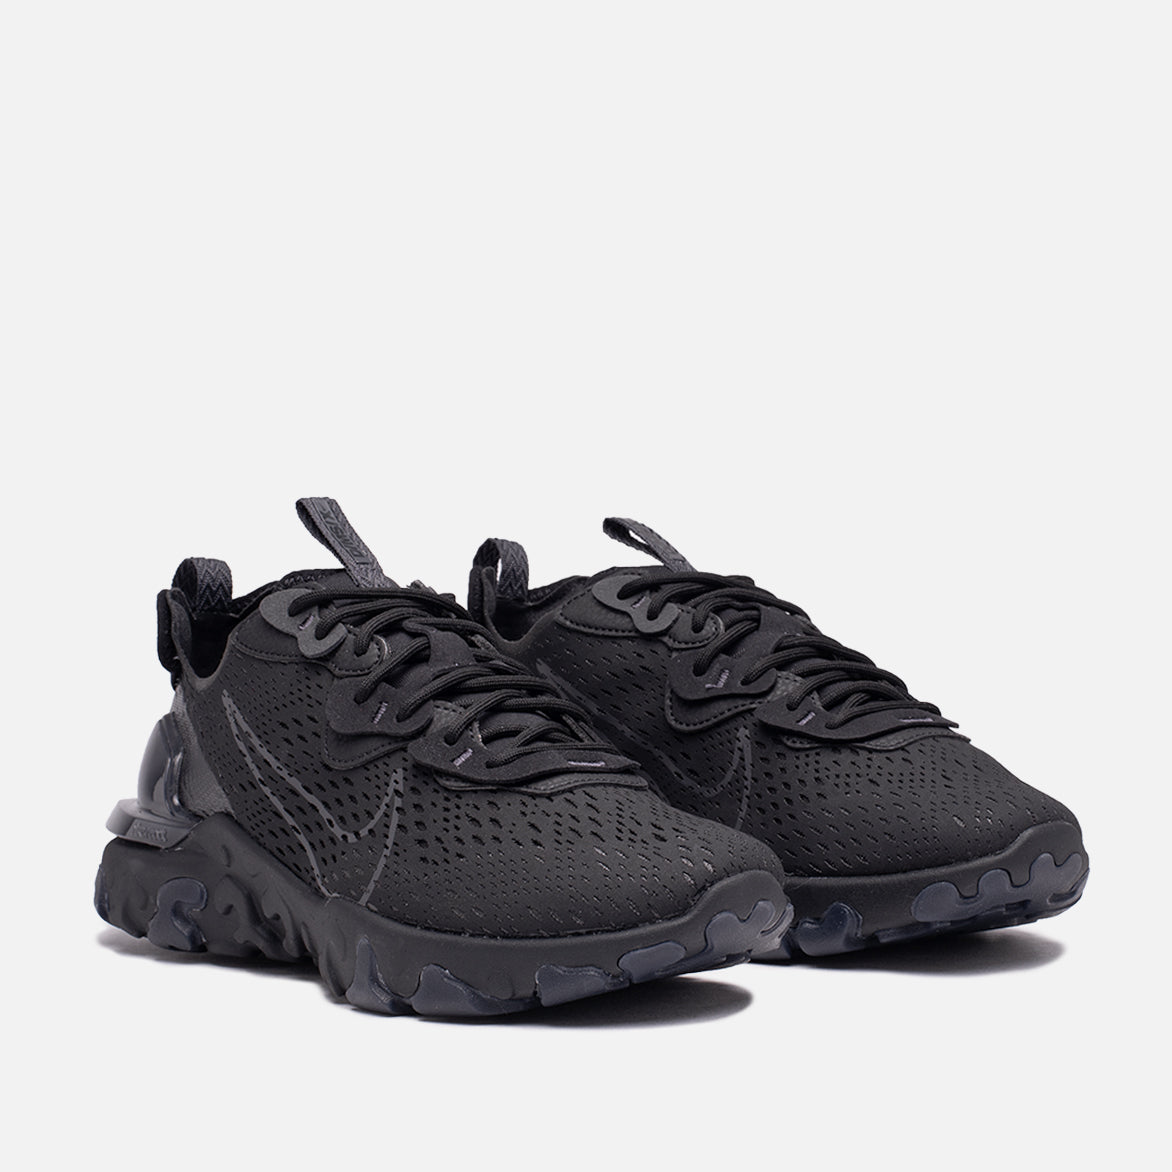 REACT VISION - BLACK / ANTHRACITE